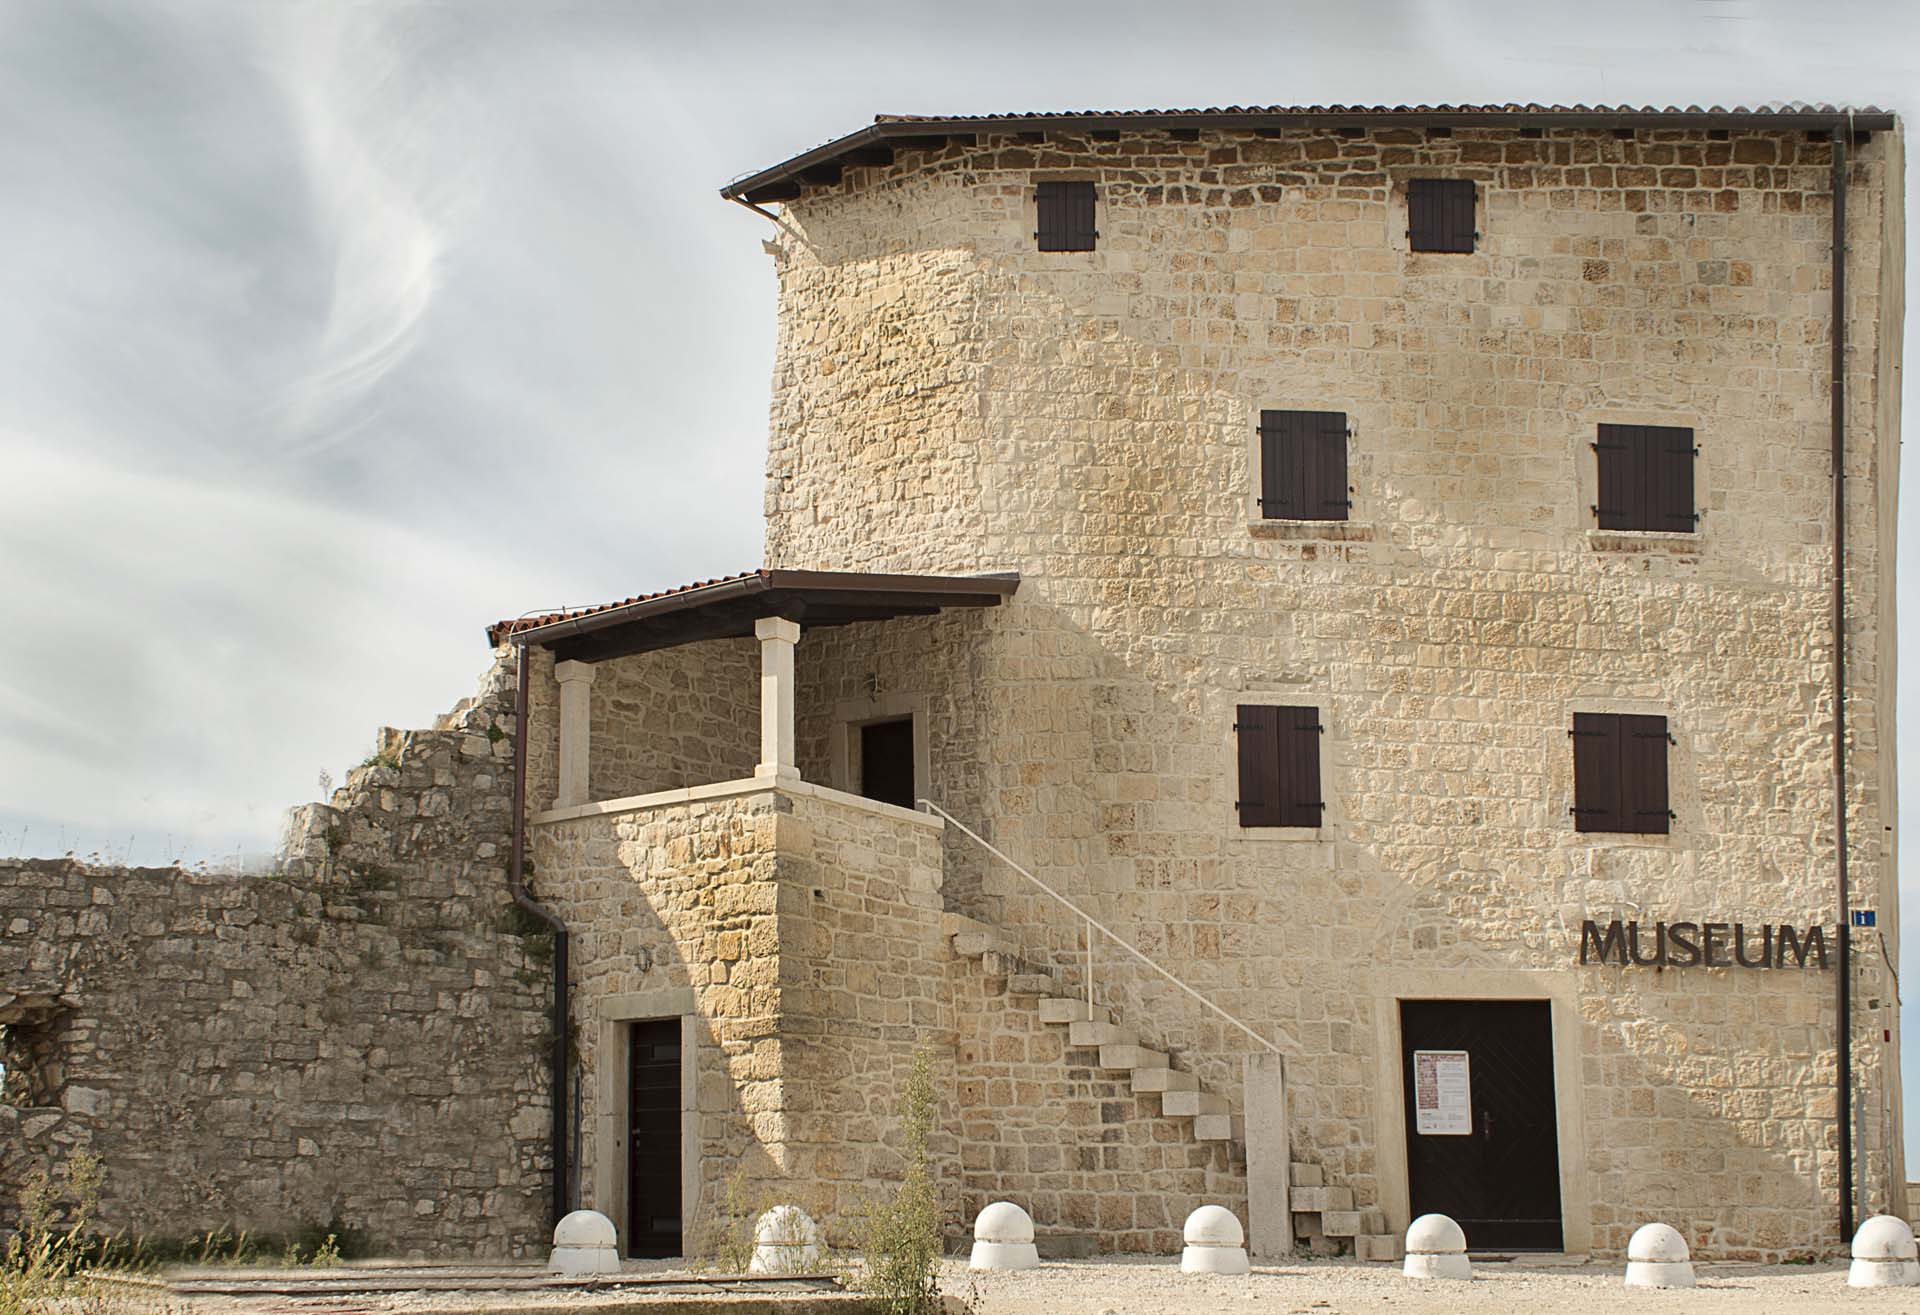 Umag Town Museum with exhibits of ware and old crafts from the Roman period